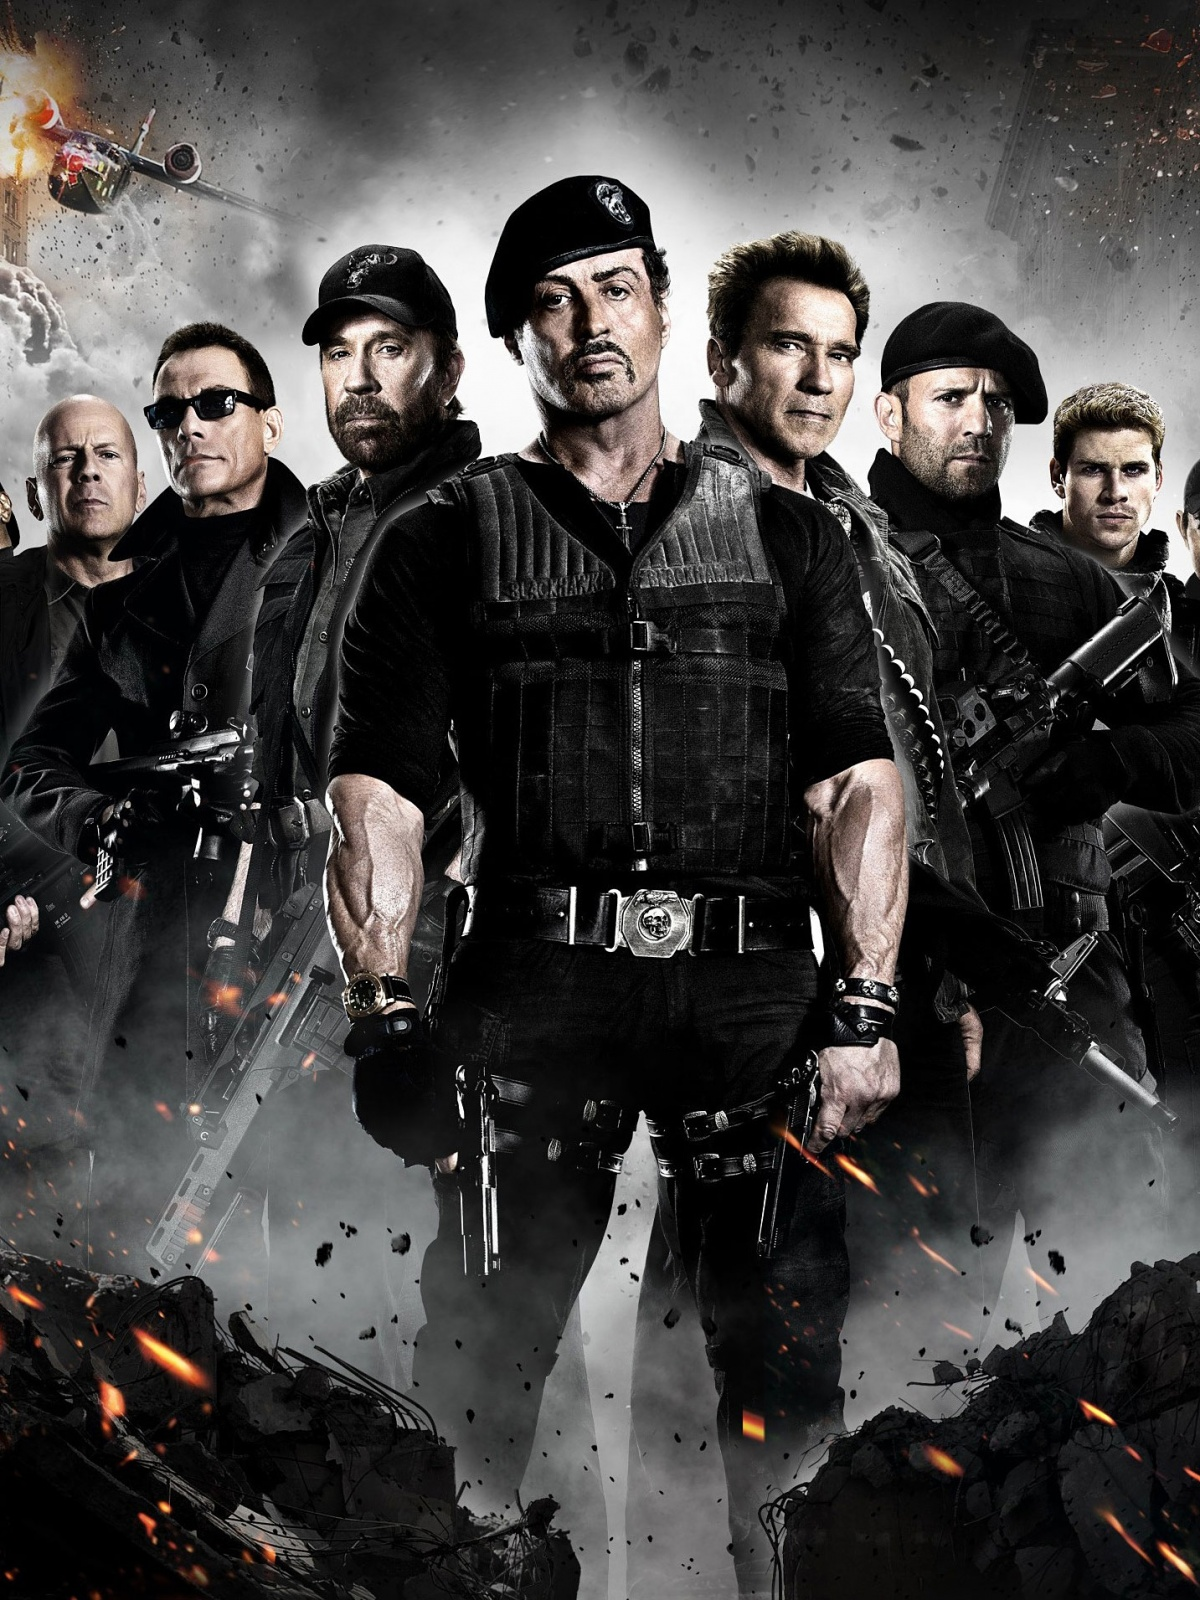 the expendables mobile wallpaper - mobiles wall